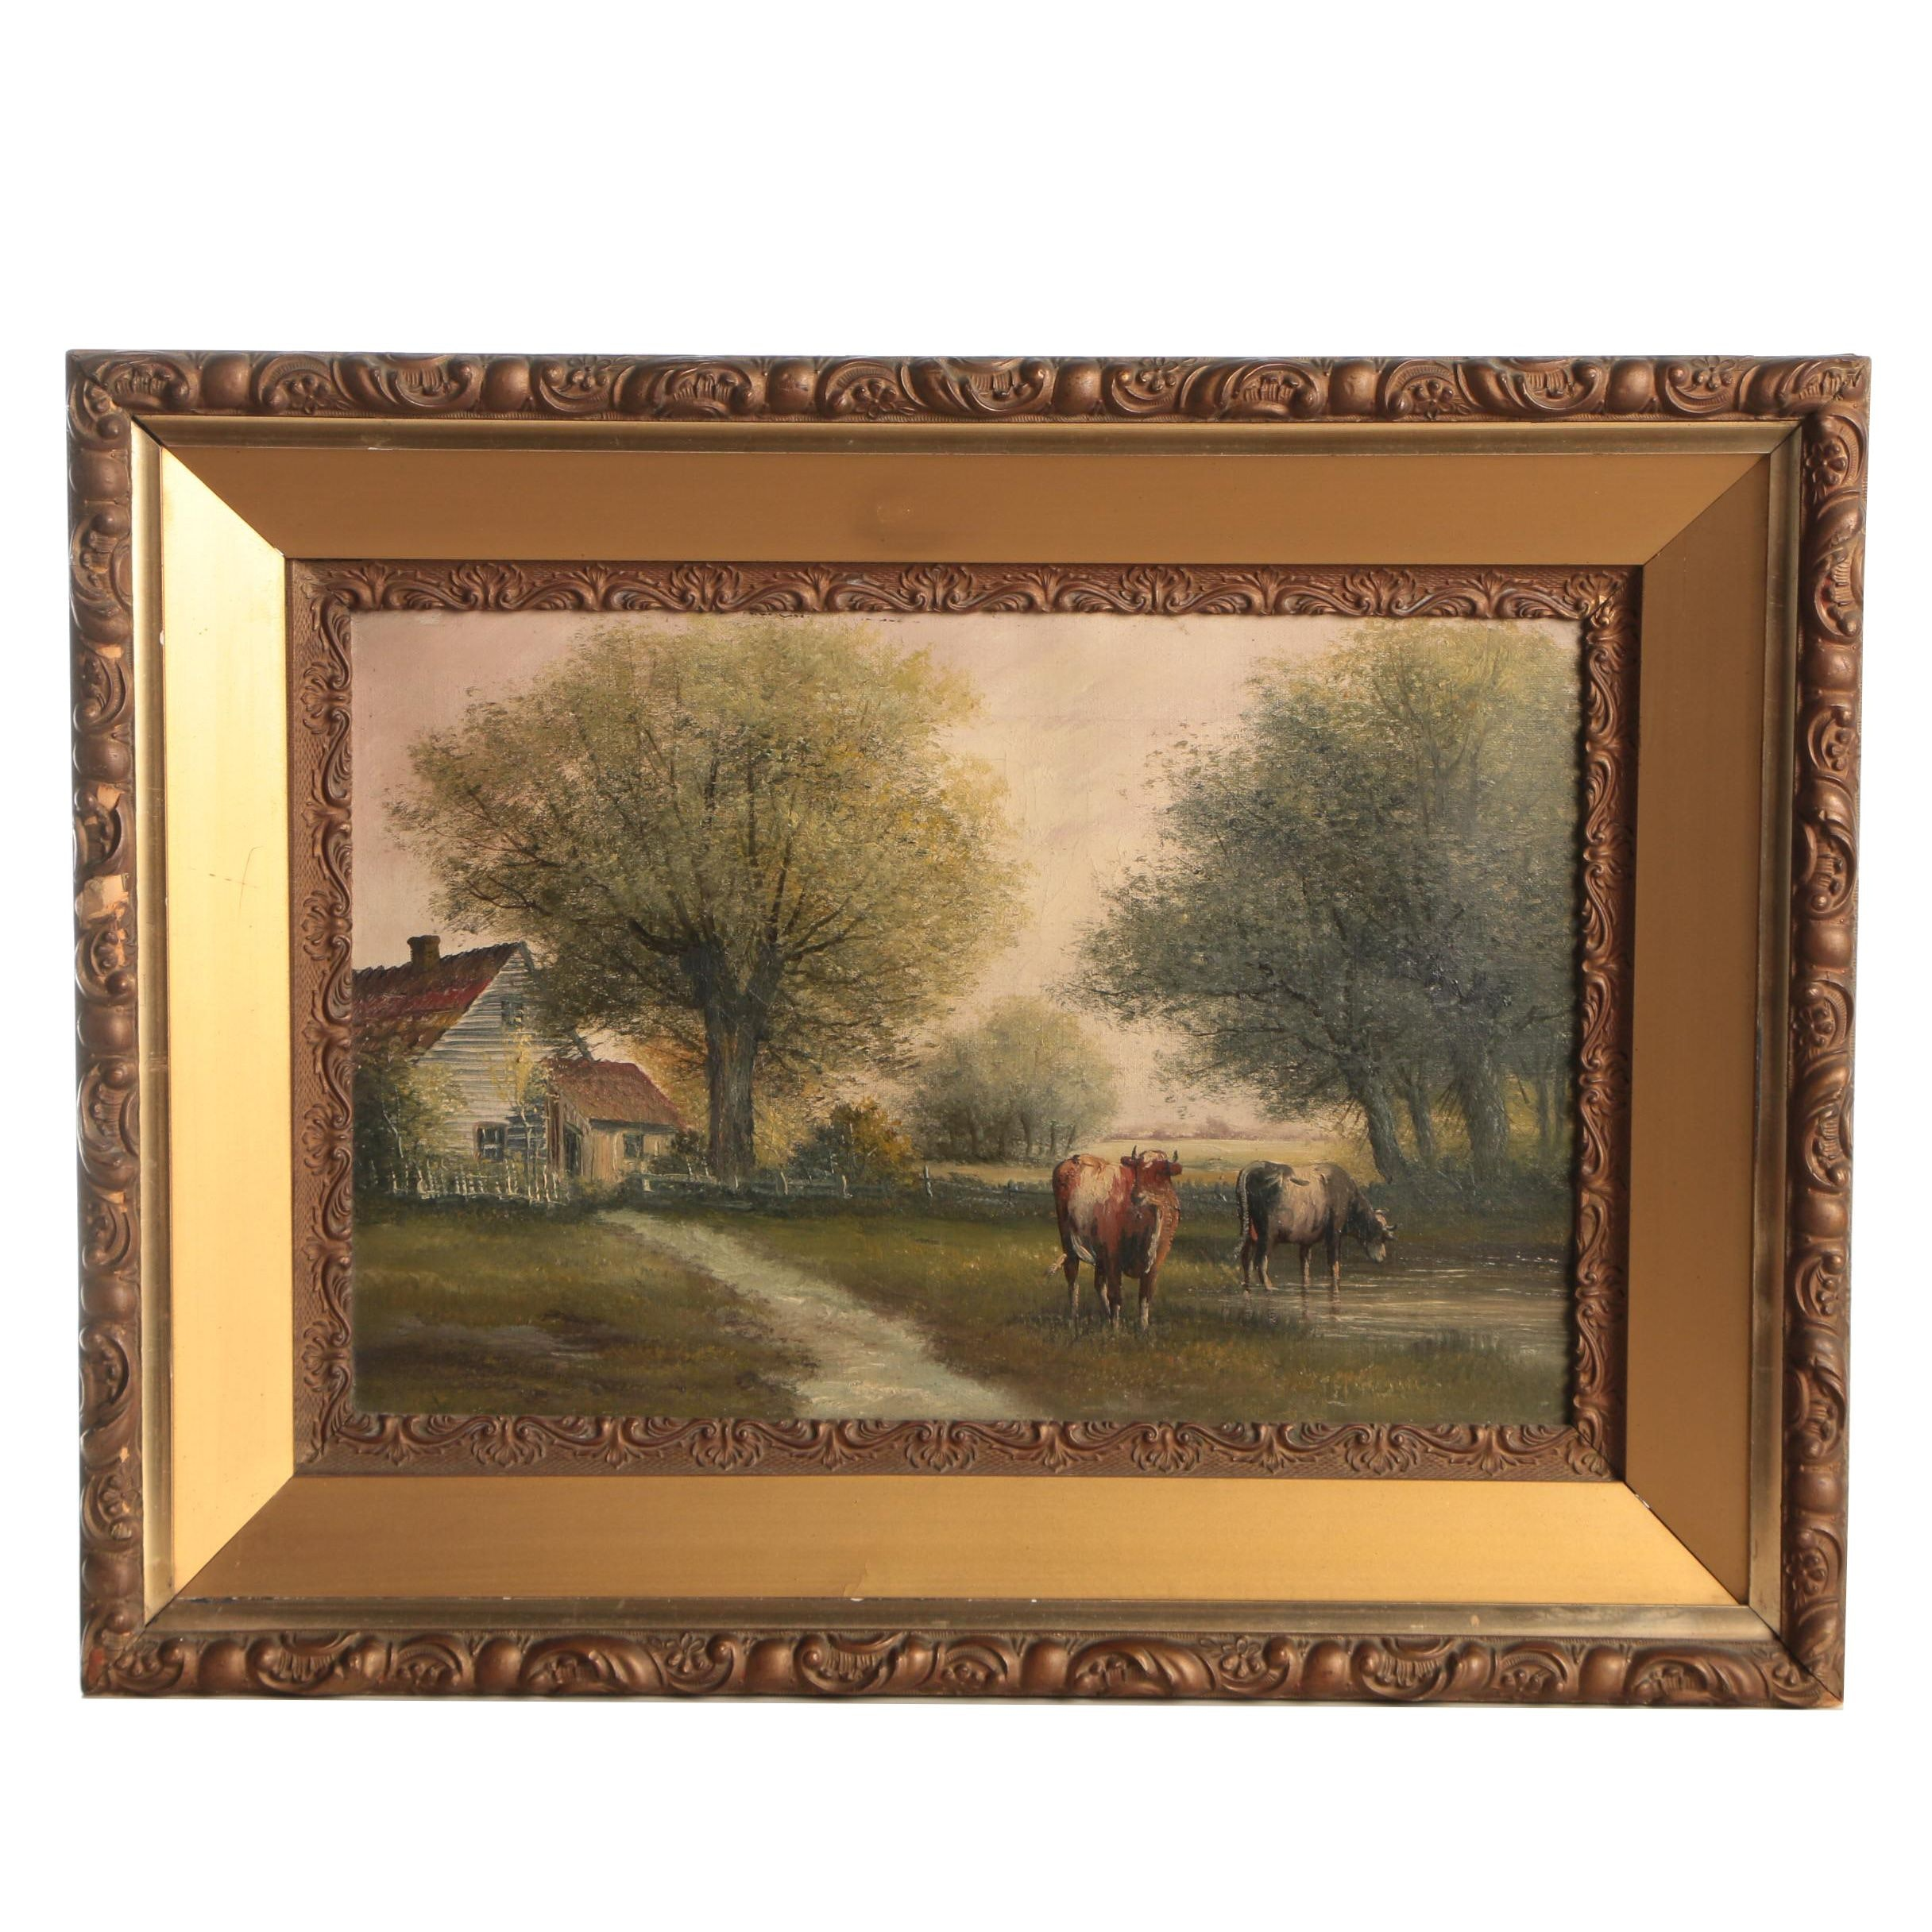 Andrew Millrose, Pastoral Landscape, Oil Painting, Late 19th Century